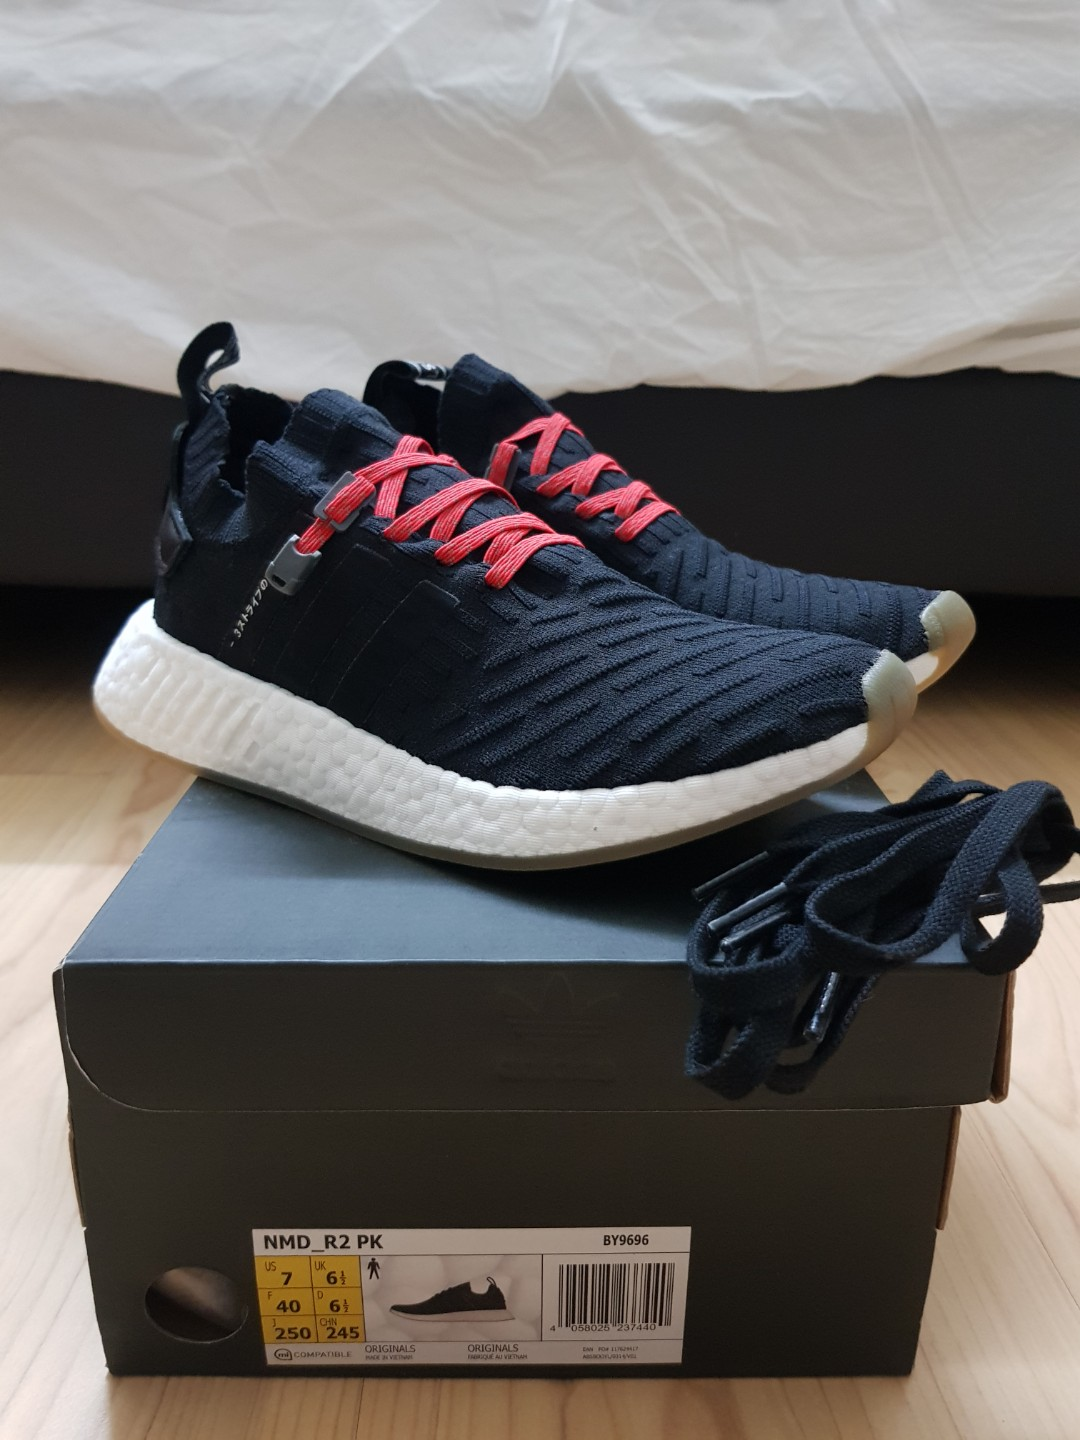 6095f14ac Adidas Nmd R2 Pk An Black With Xpand Laces Men S Fashion